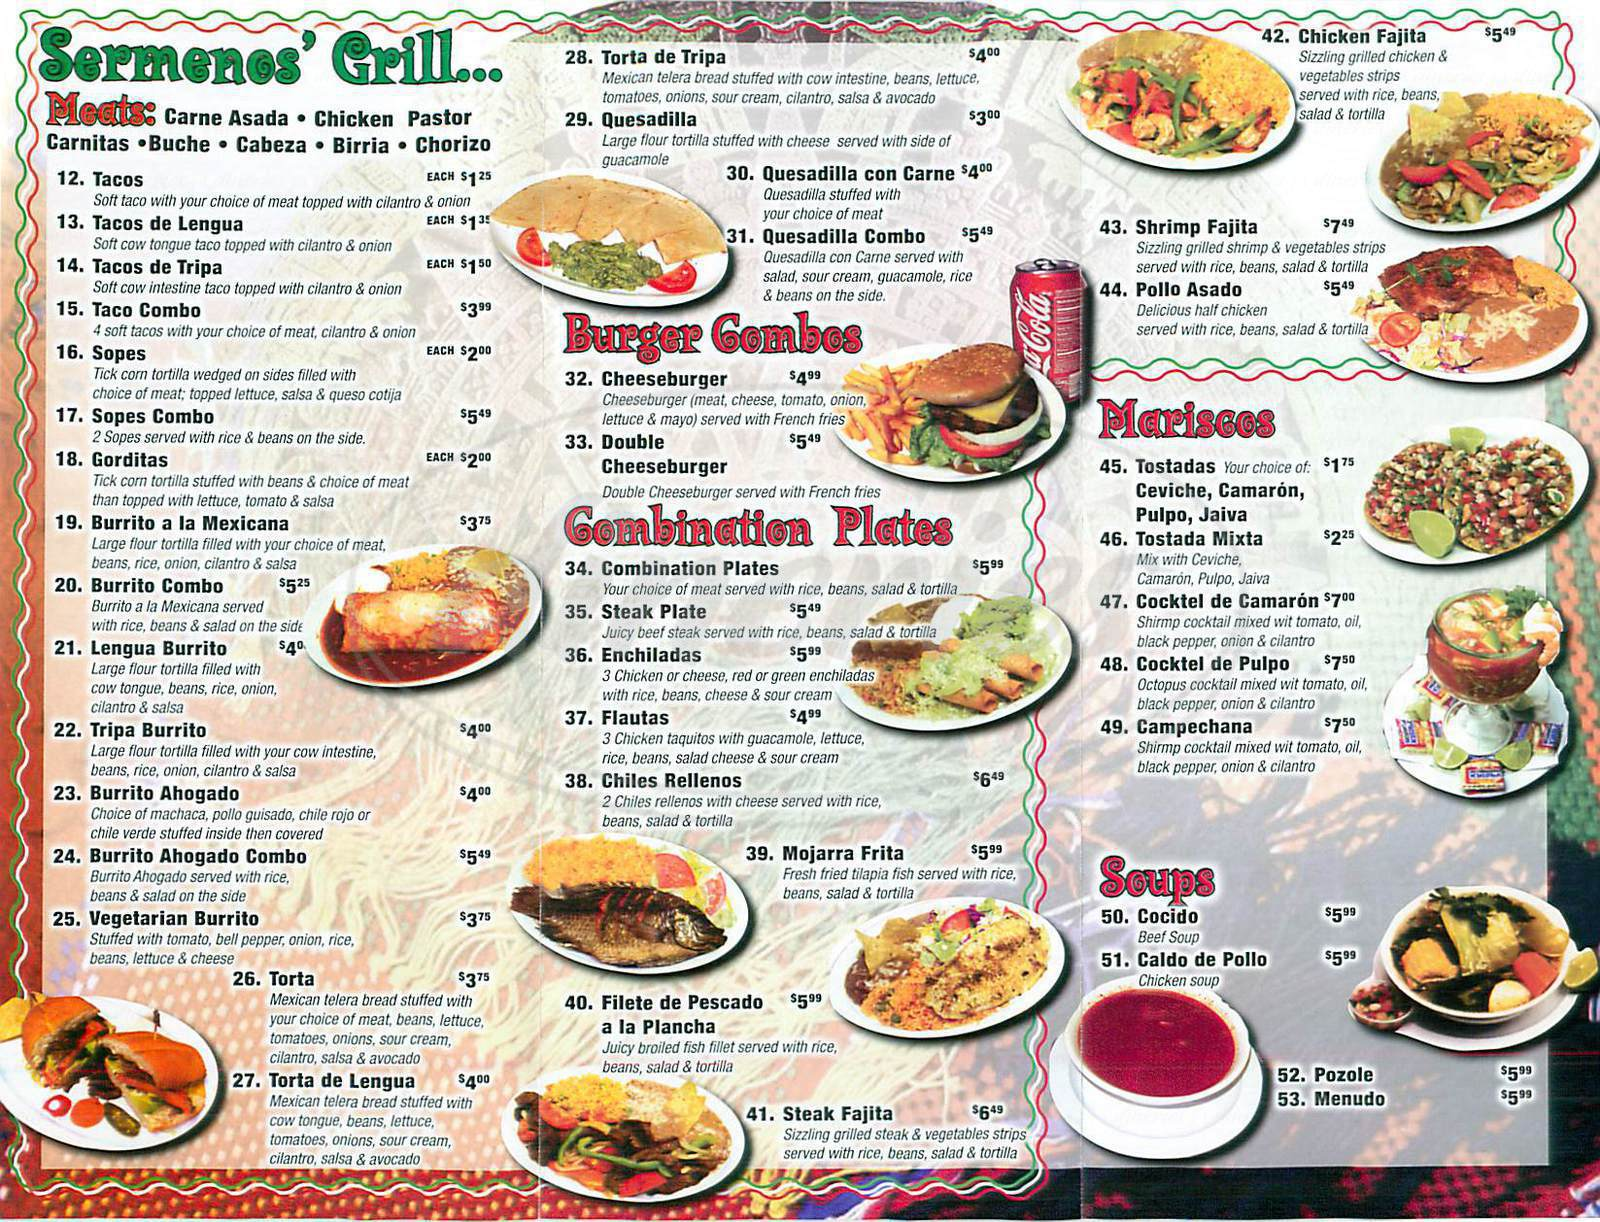 menu for Sermenos Restaurant